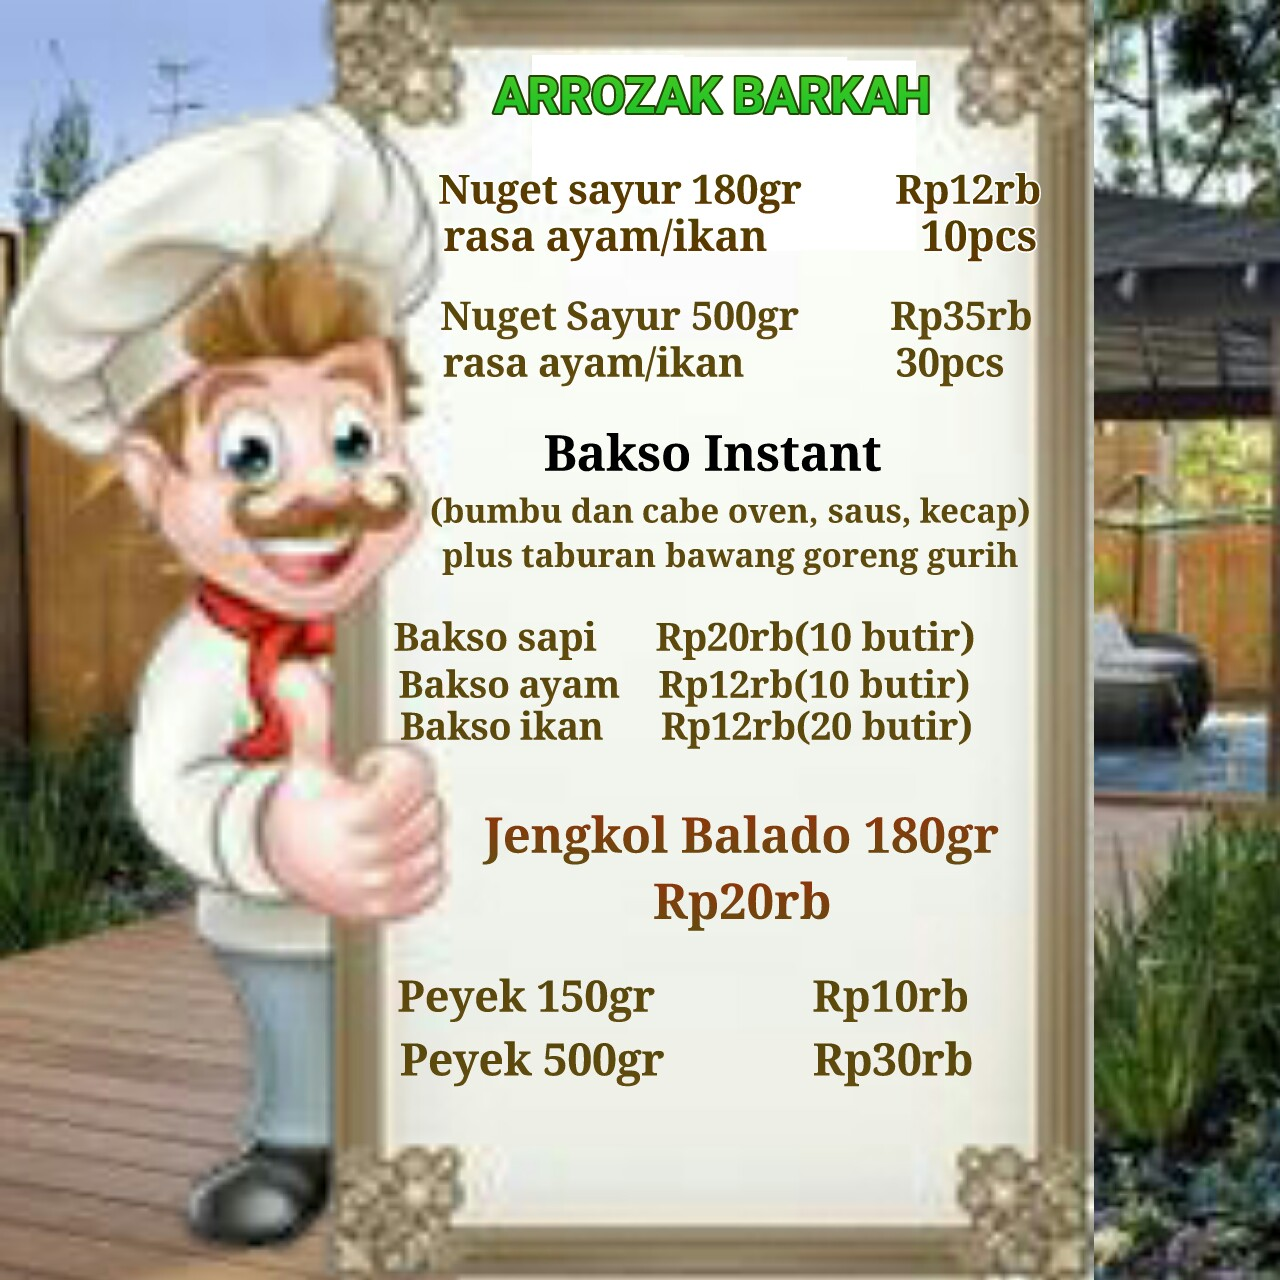 ARROZAK BARKAH PRODUCT